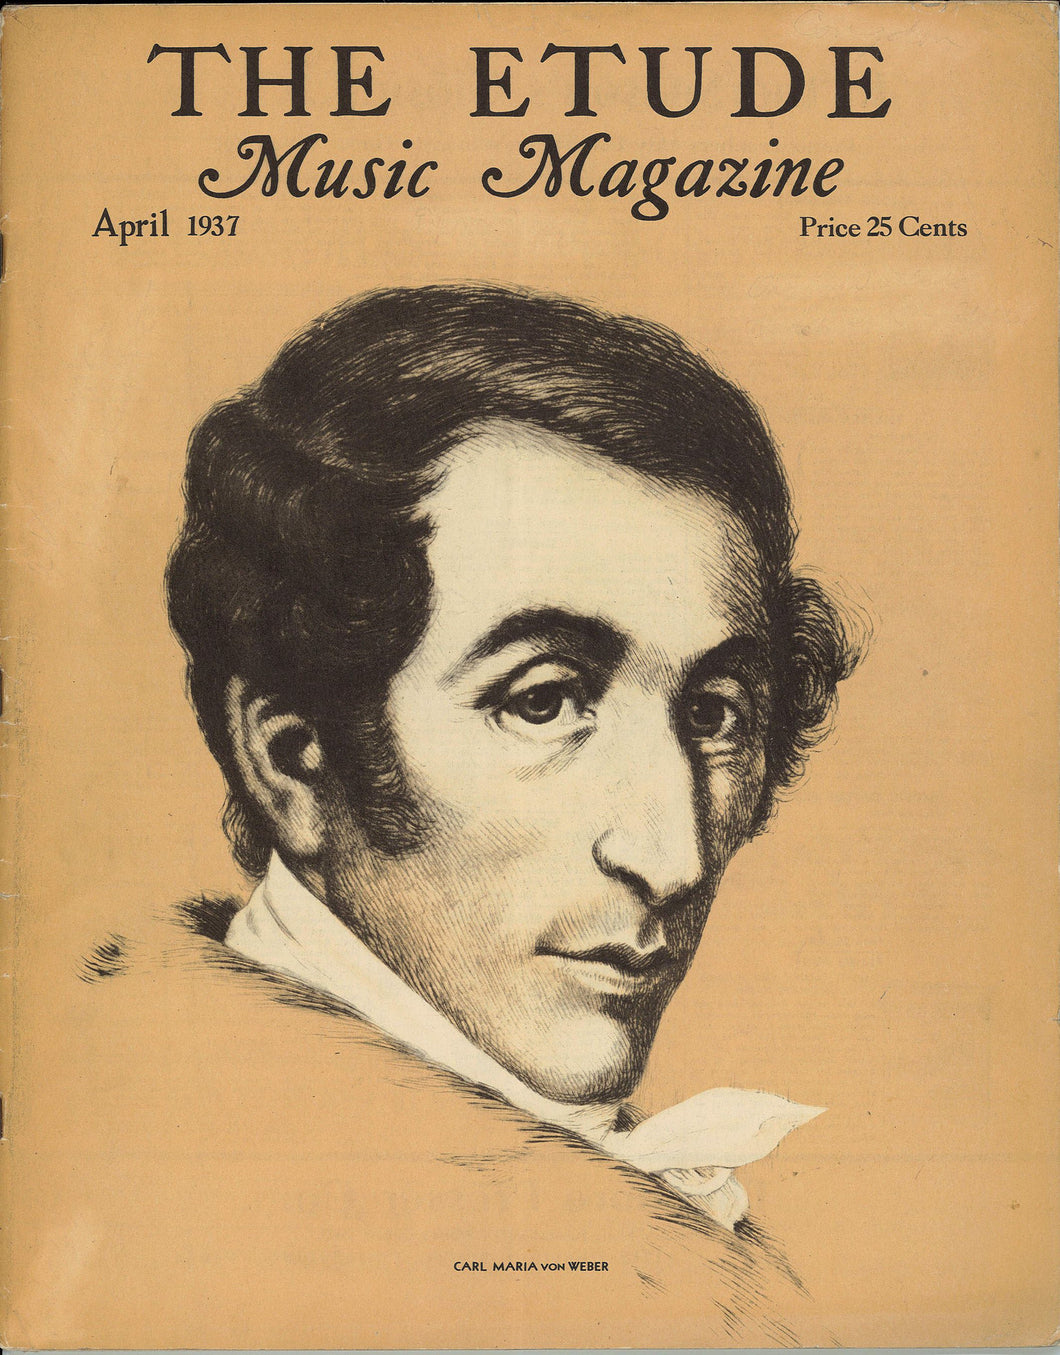 1937 April, The Etude Music Magazine - Carl Maria von Weber